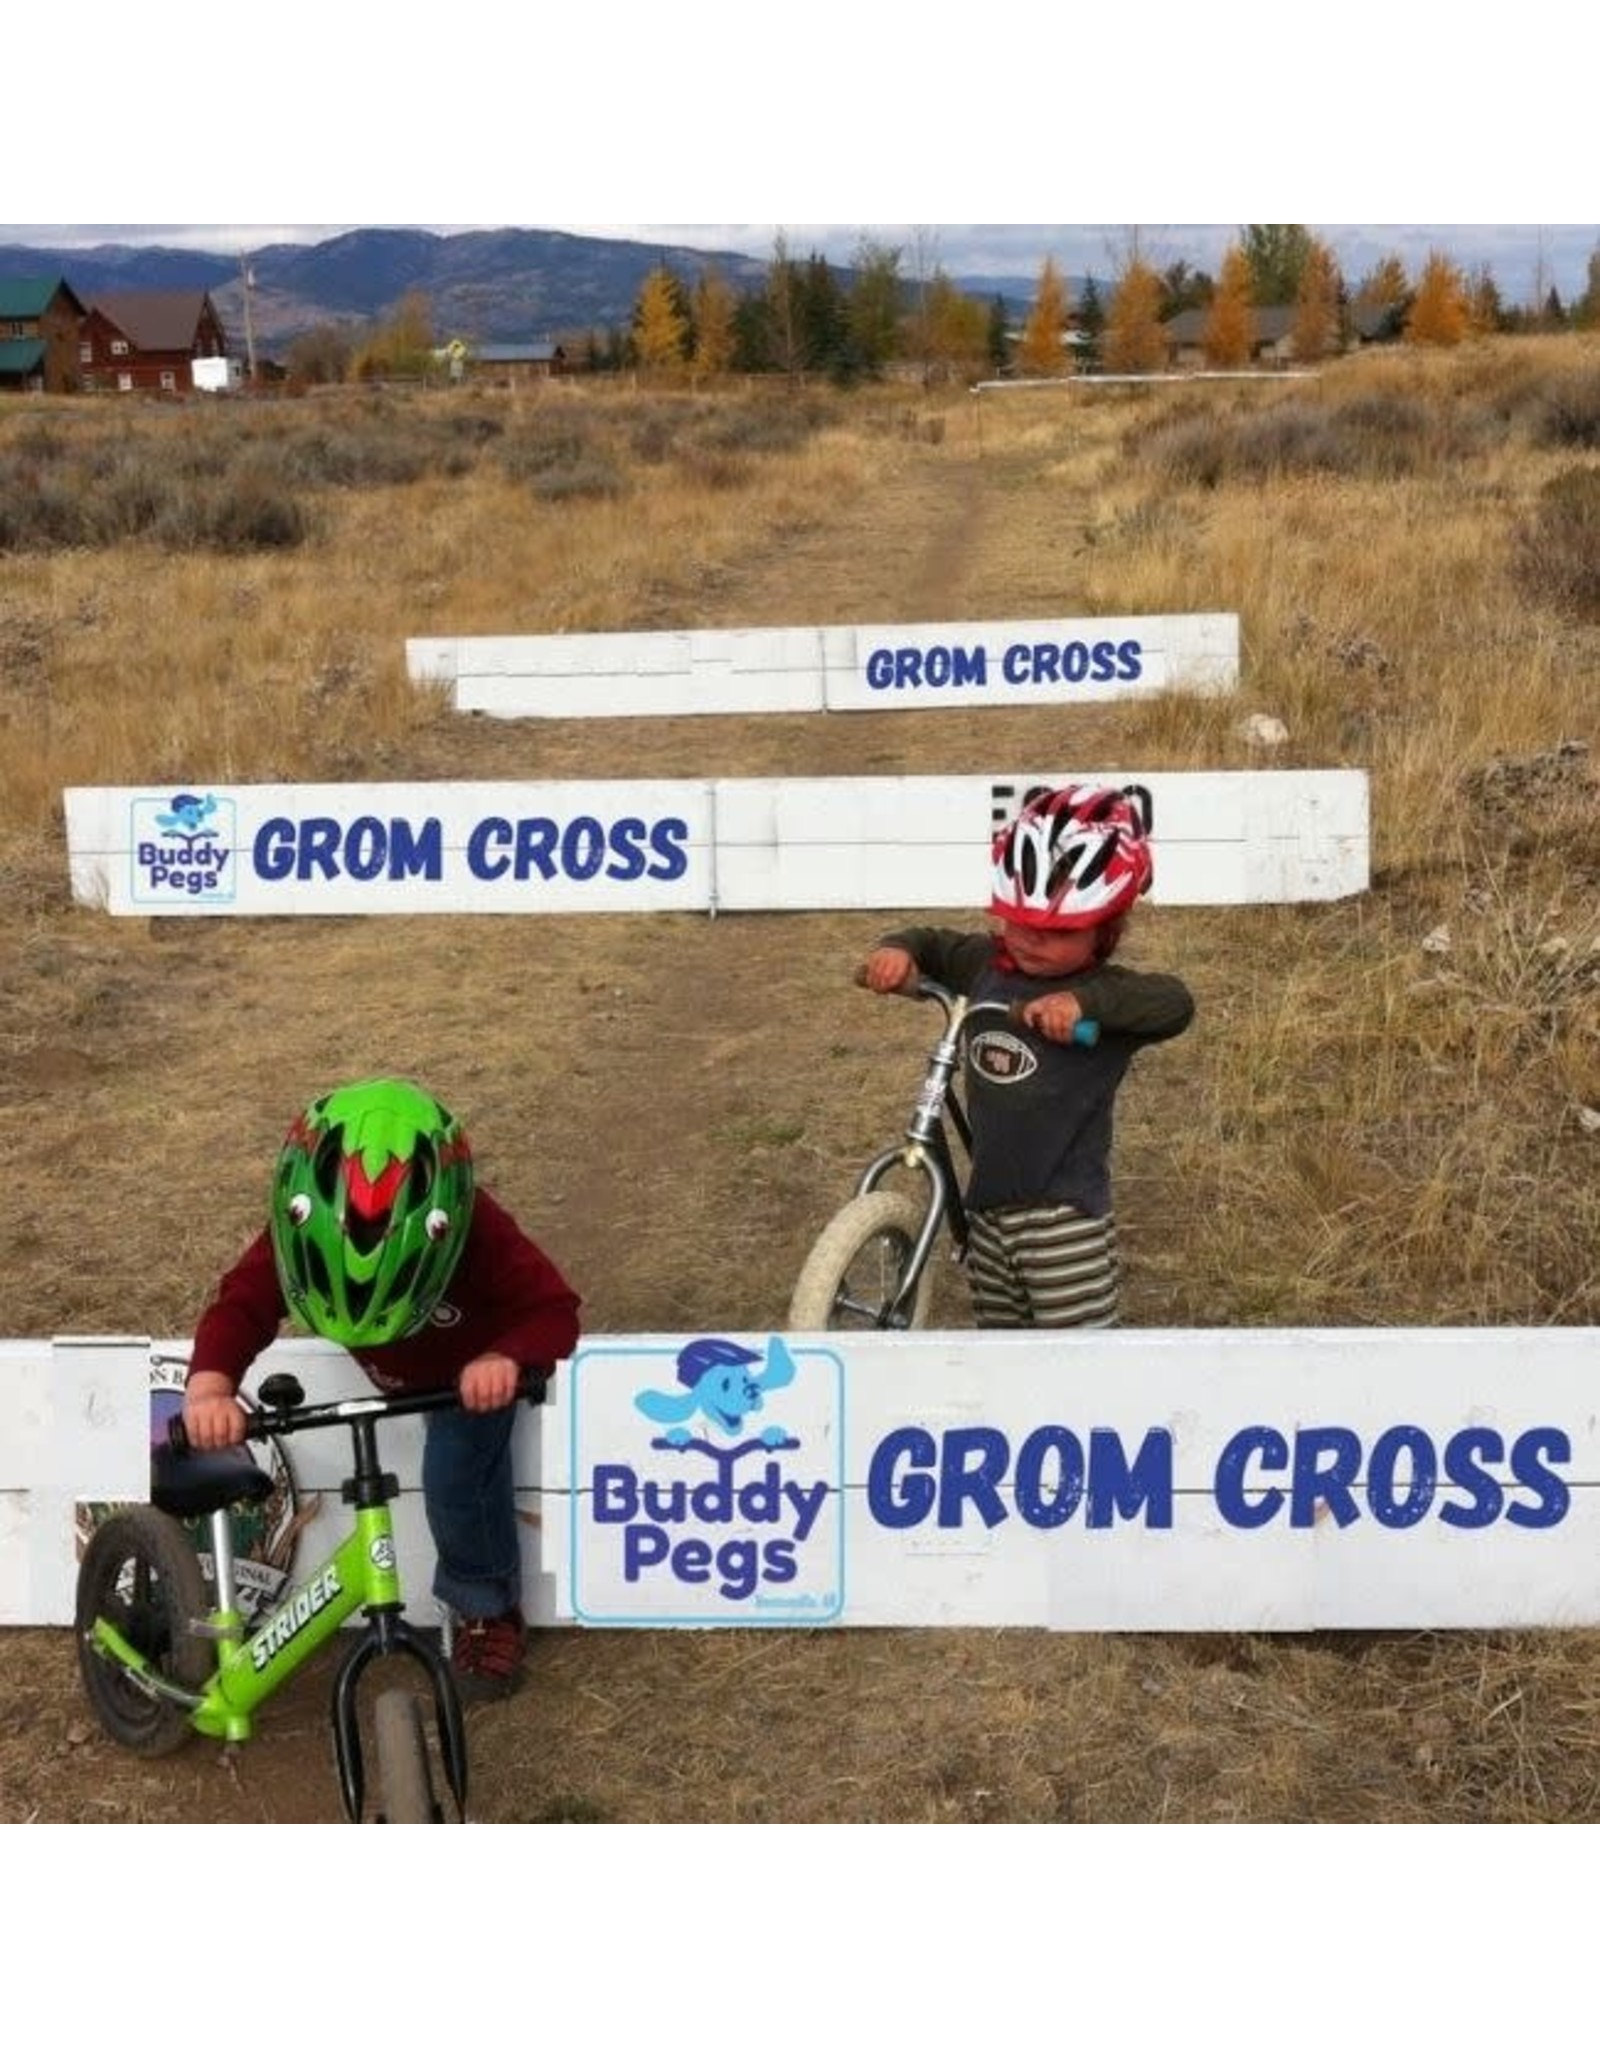 Grom Cross - NO GEARS (Single Speed) Category